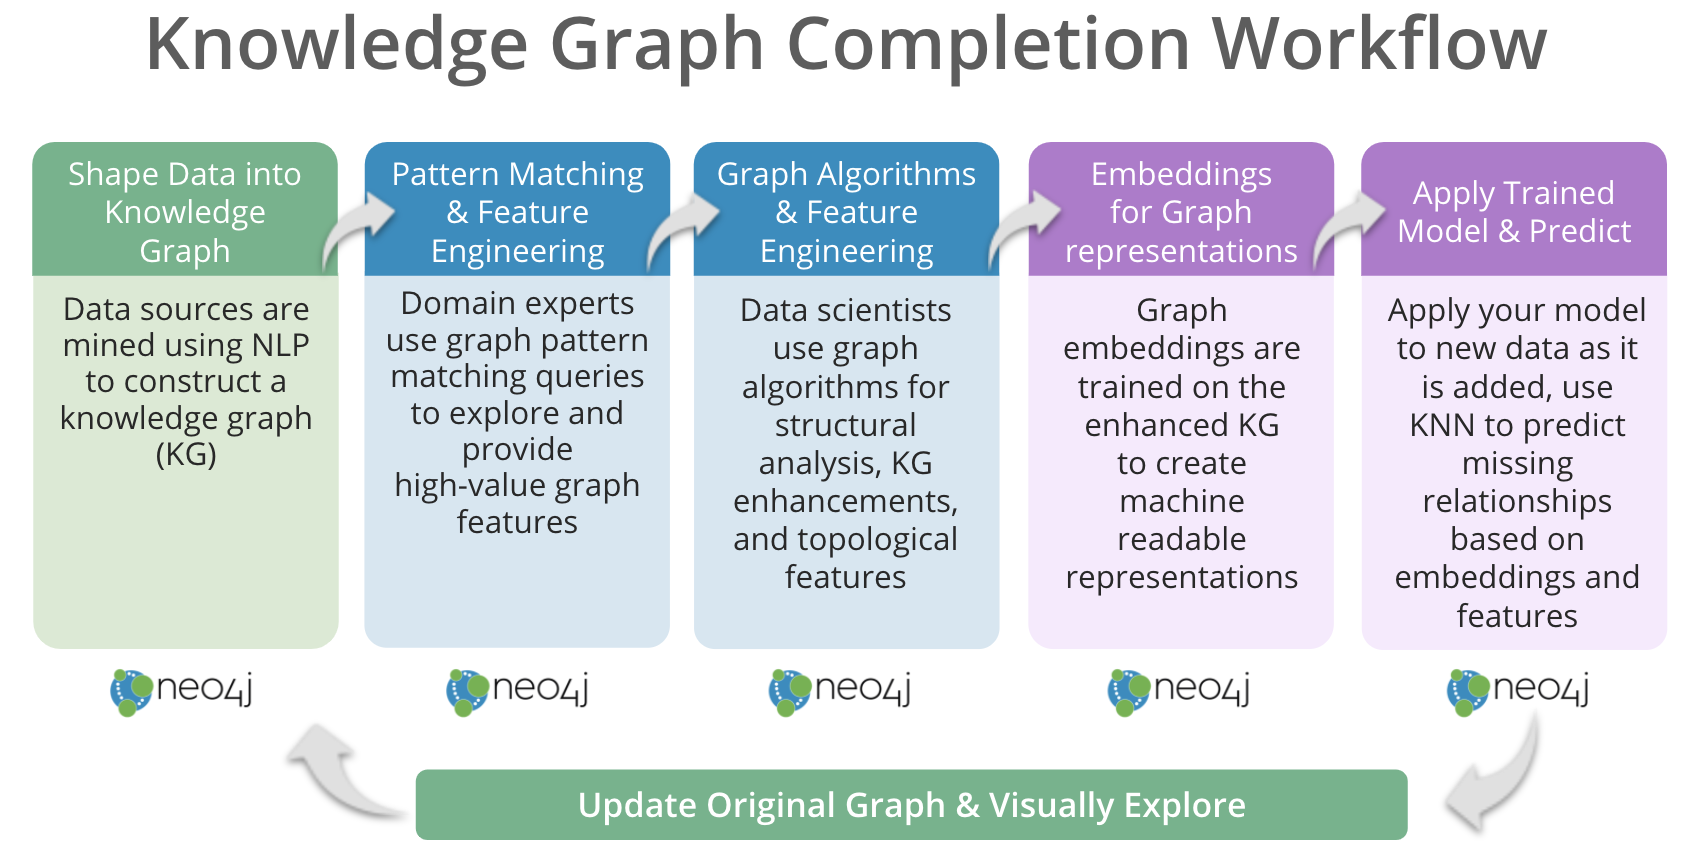 This image shows a knowledge graph completion workflow.